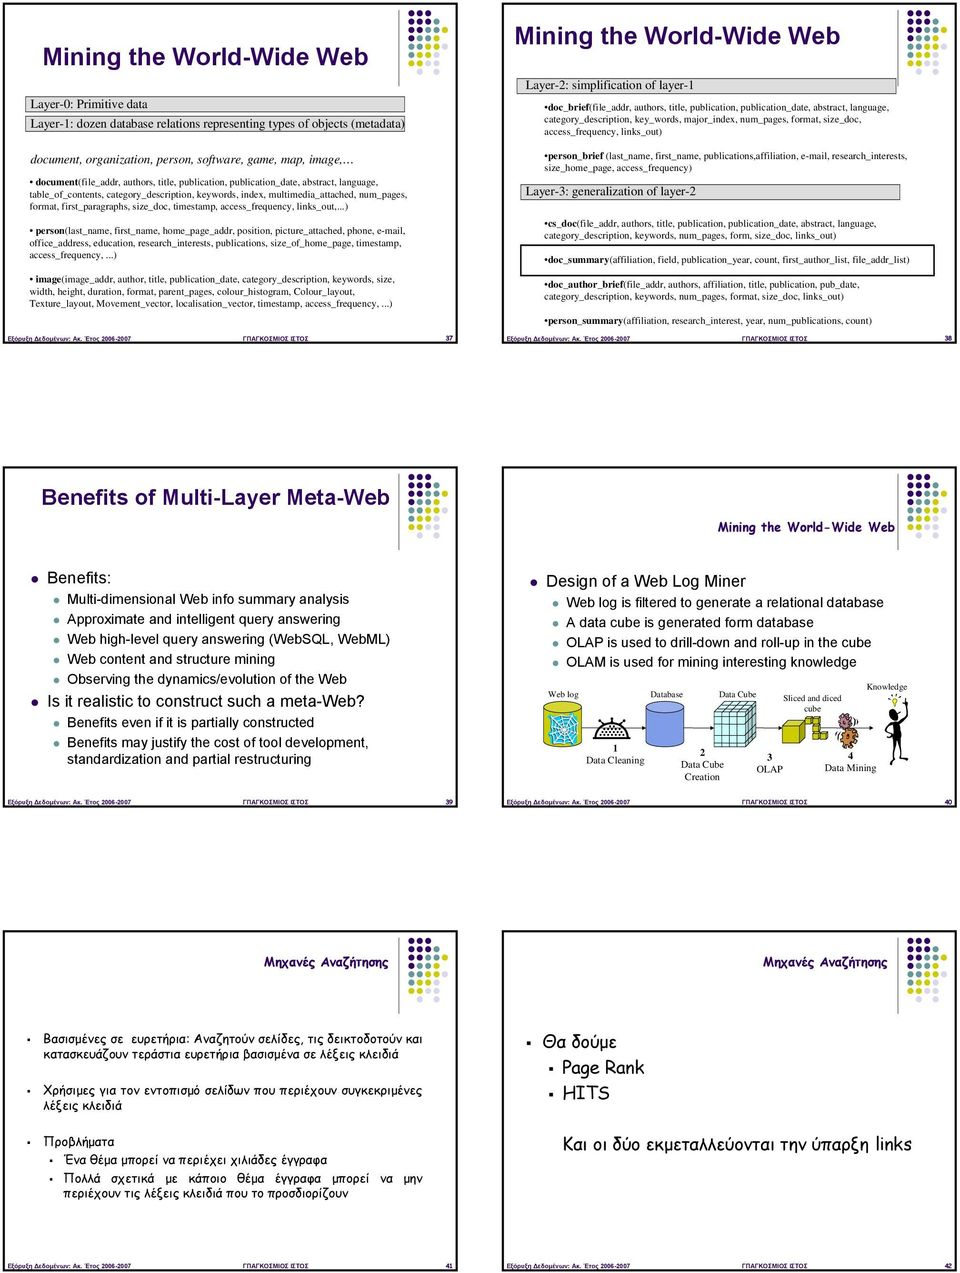 game, map, image, document(file_addr, authors, title, publication, publication_date, abstract, language, table_of_contents, category_description, keywords, index, multimedia_attached, num_pages,